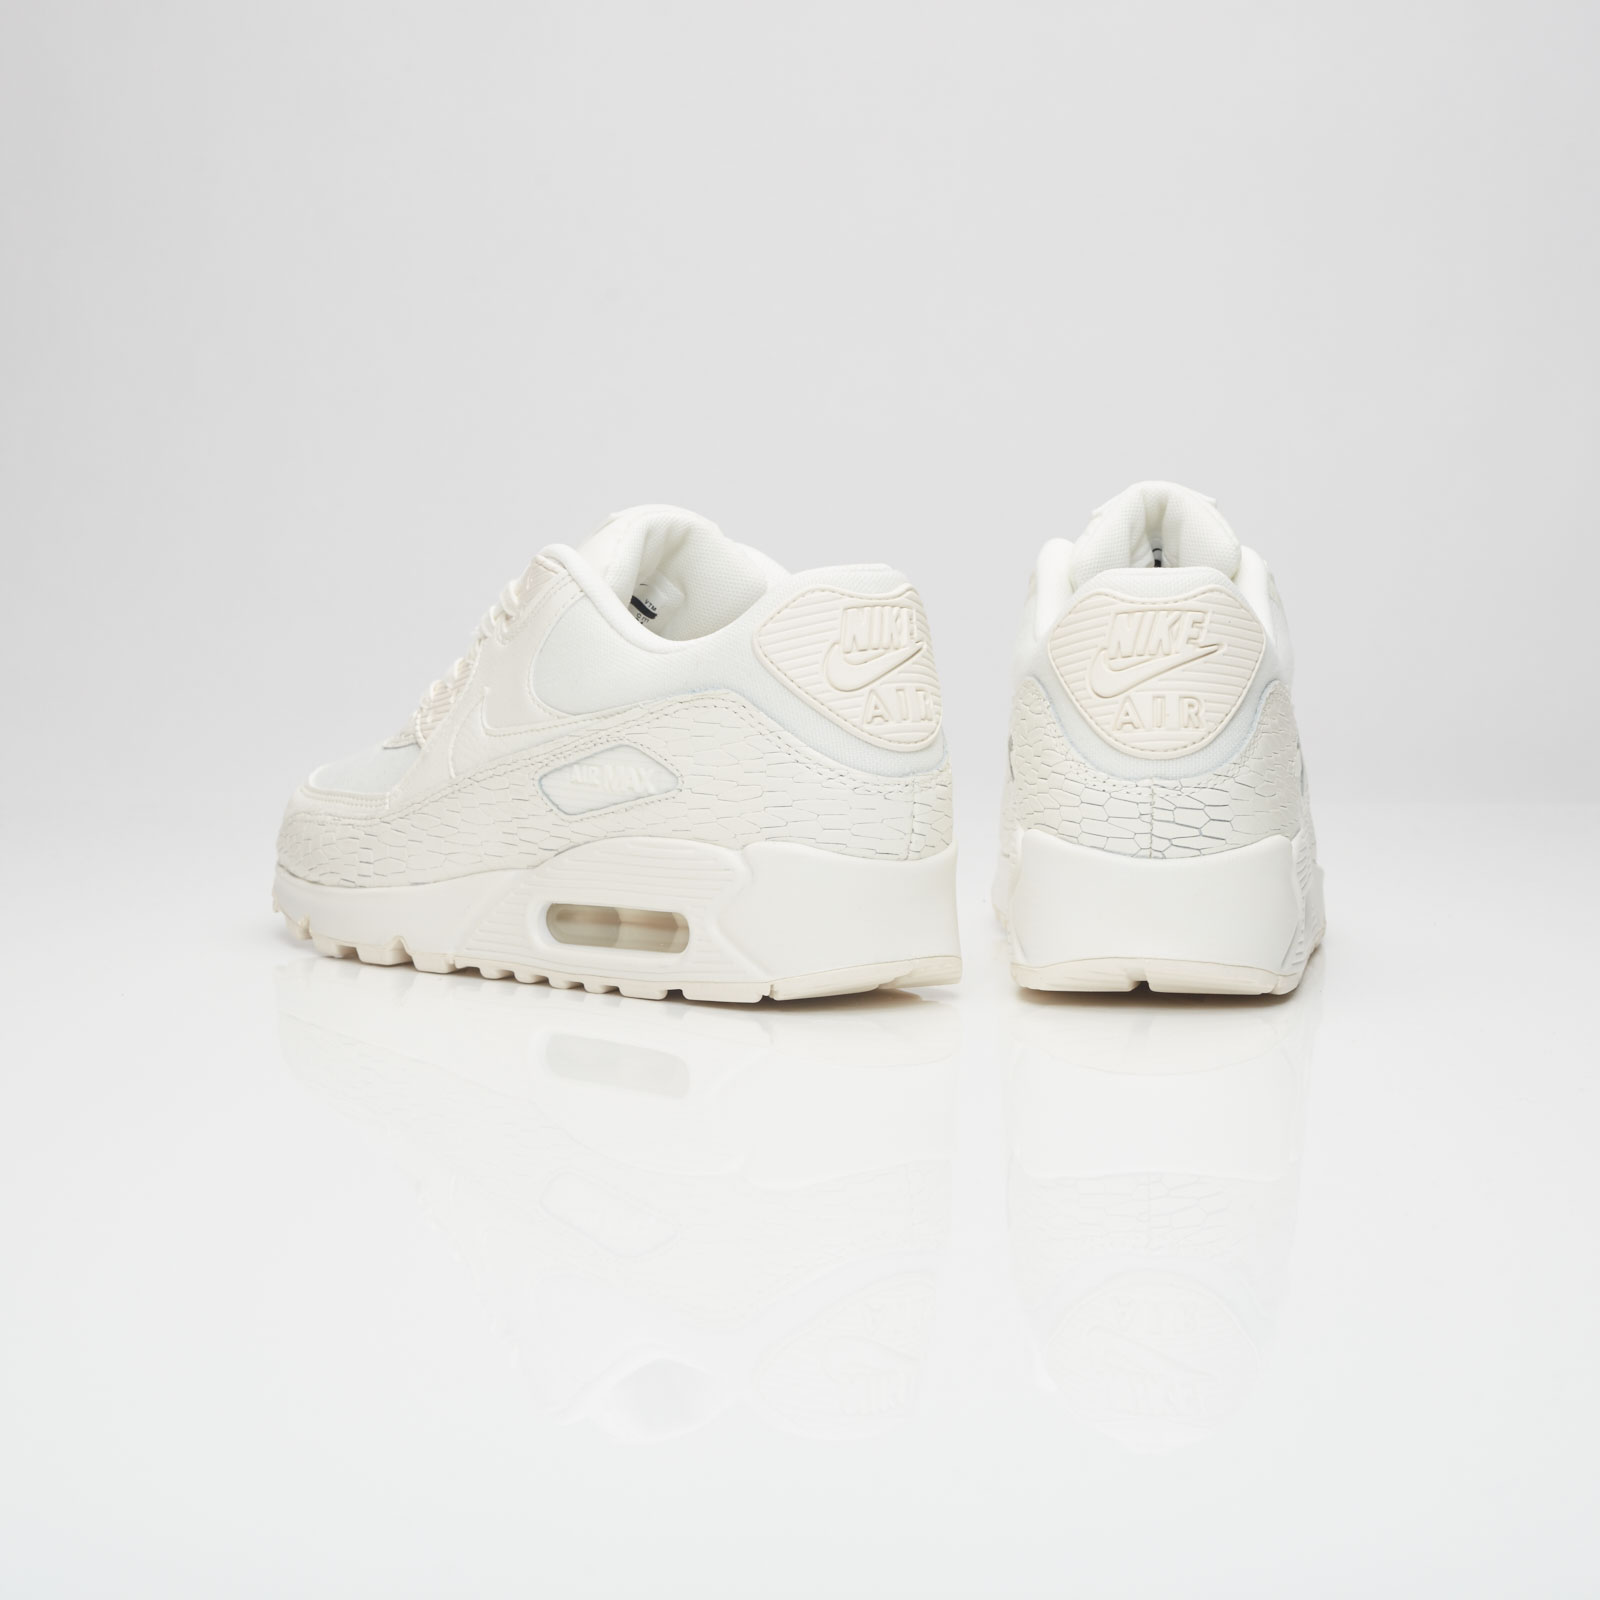 new product 94713 c6b0f Nike Wmns Air Max 90 Premium Leather - 904535-100 - Sneakersnstuff    sneakers   streetwear online since 1999